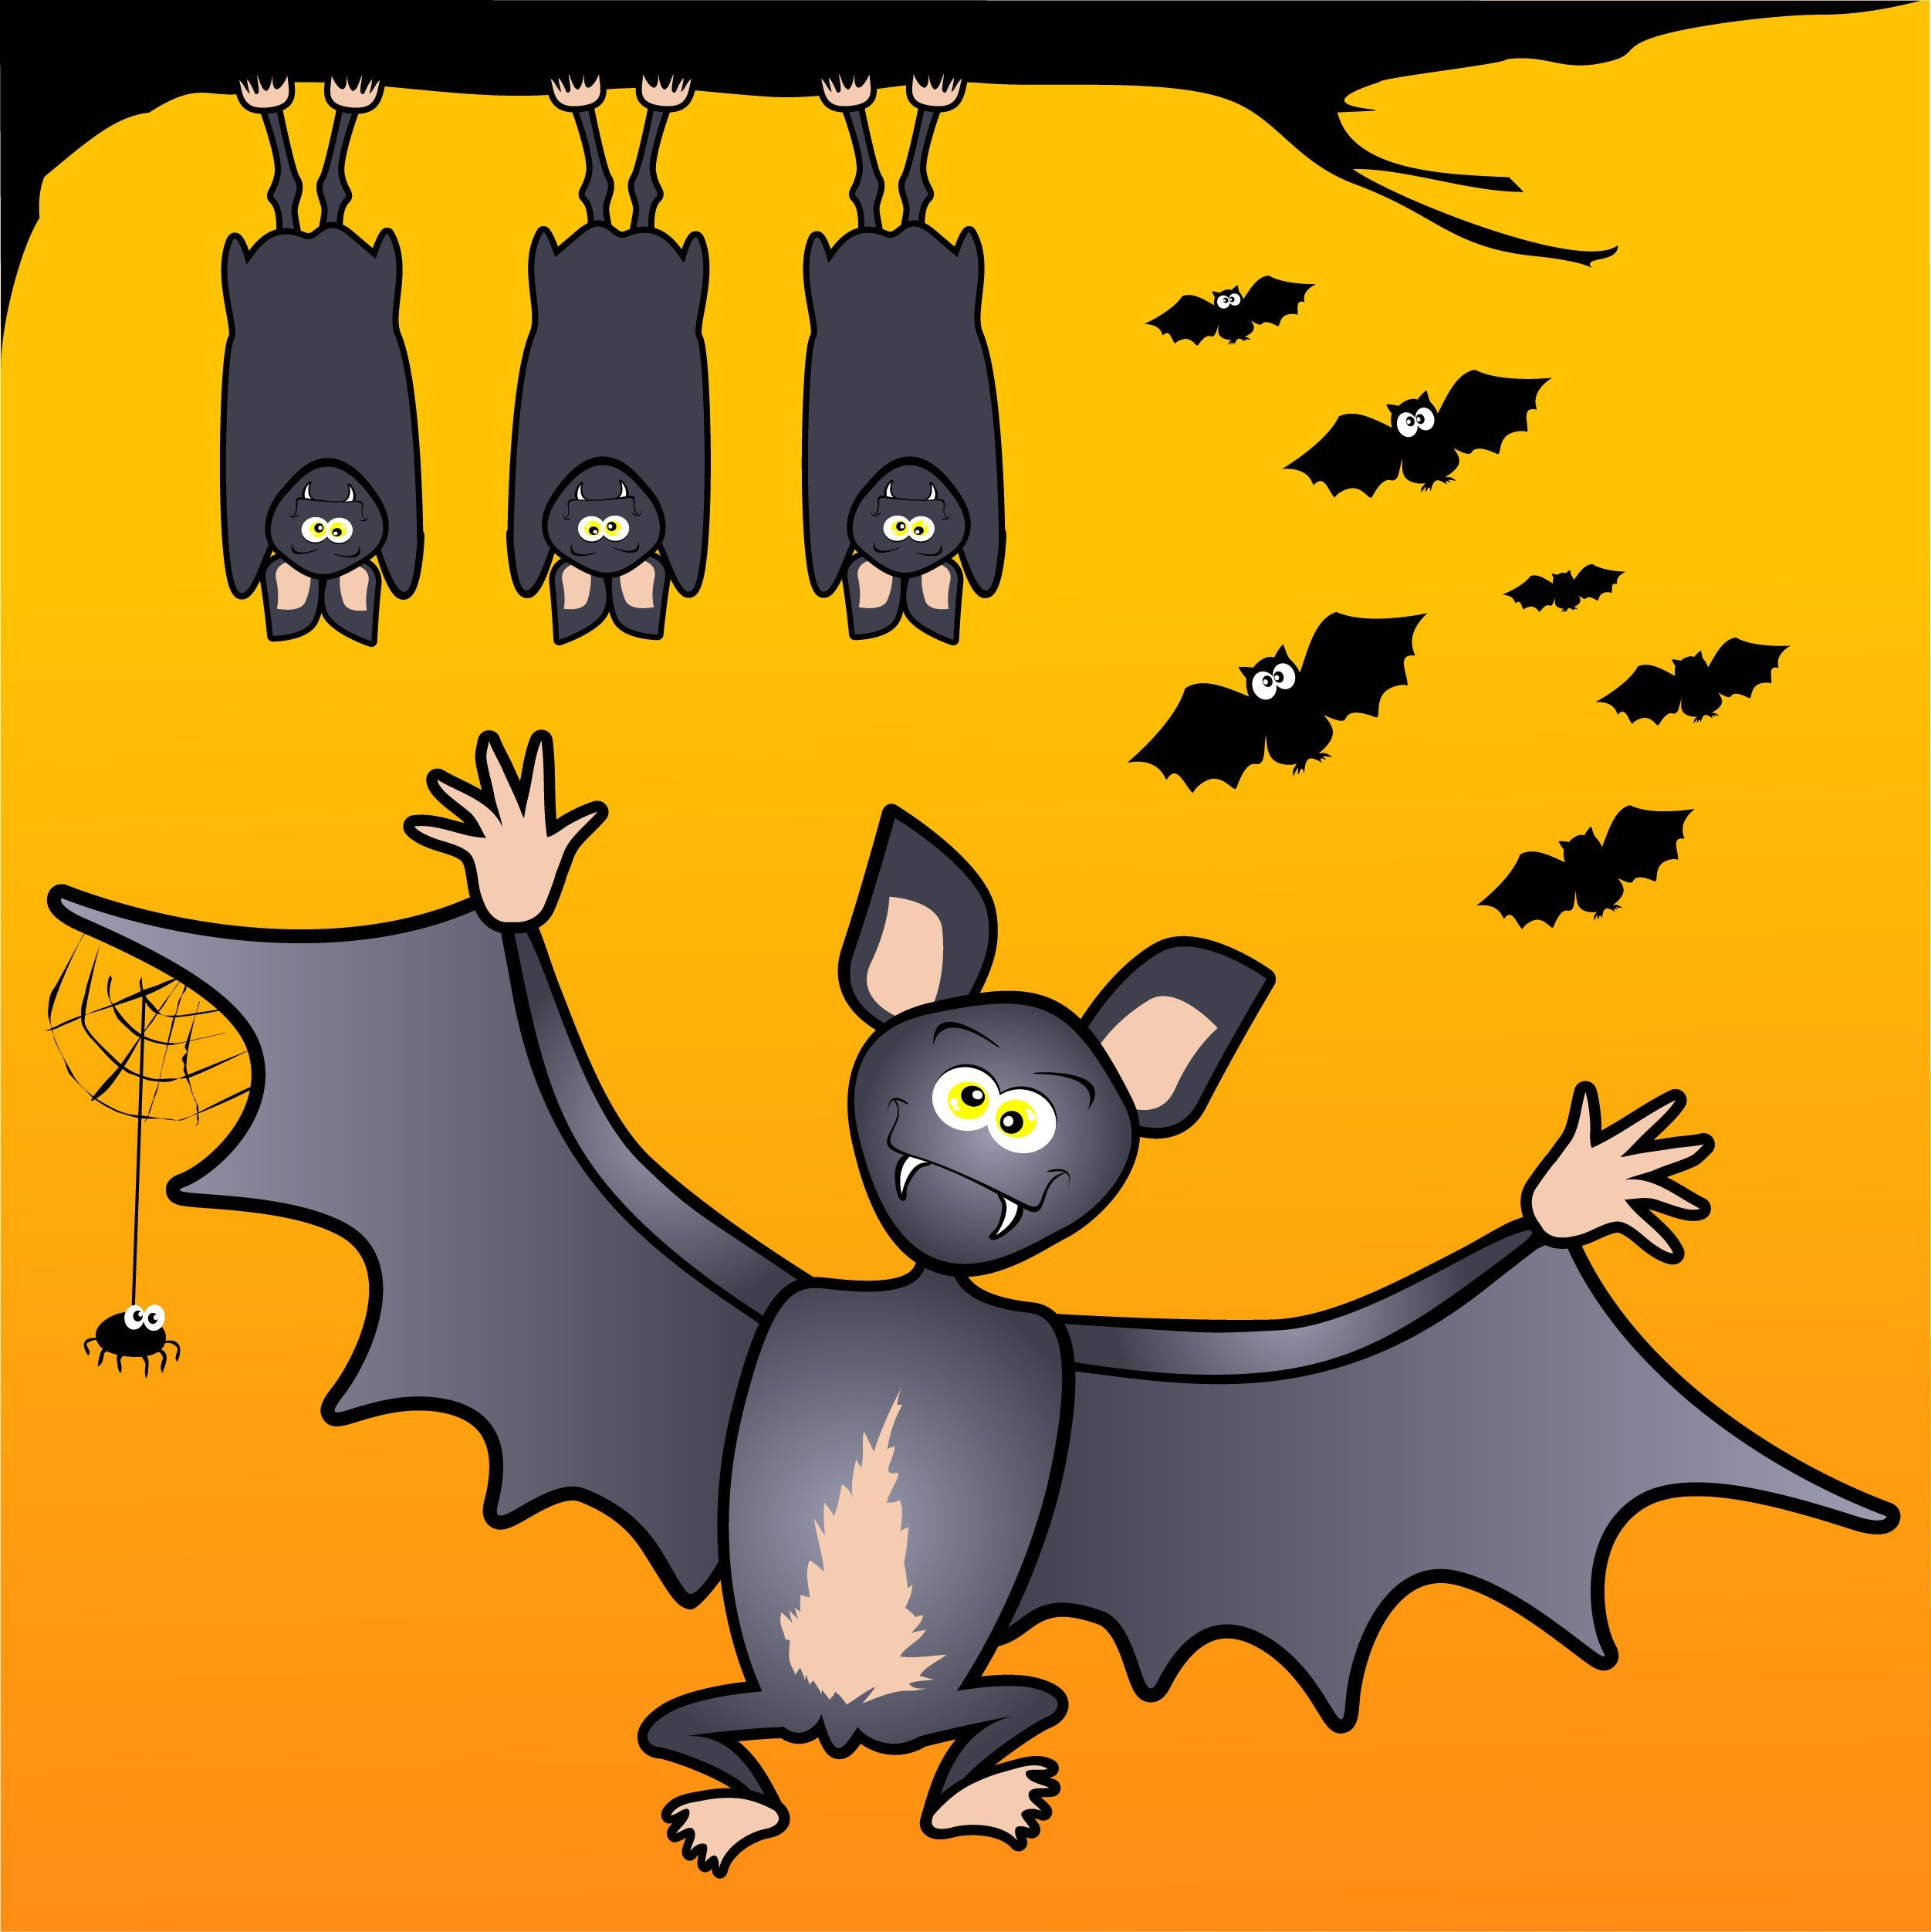 Series of funny bats on orange background.